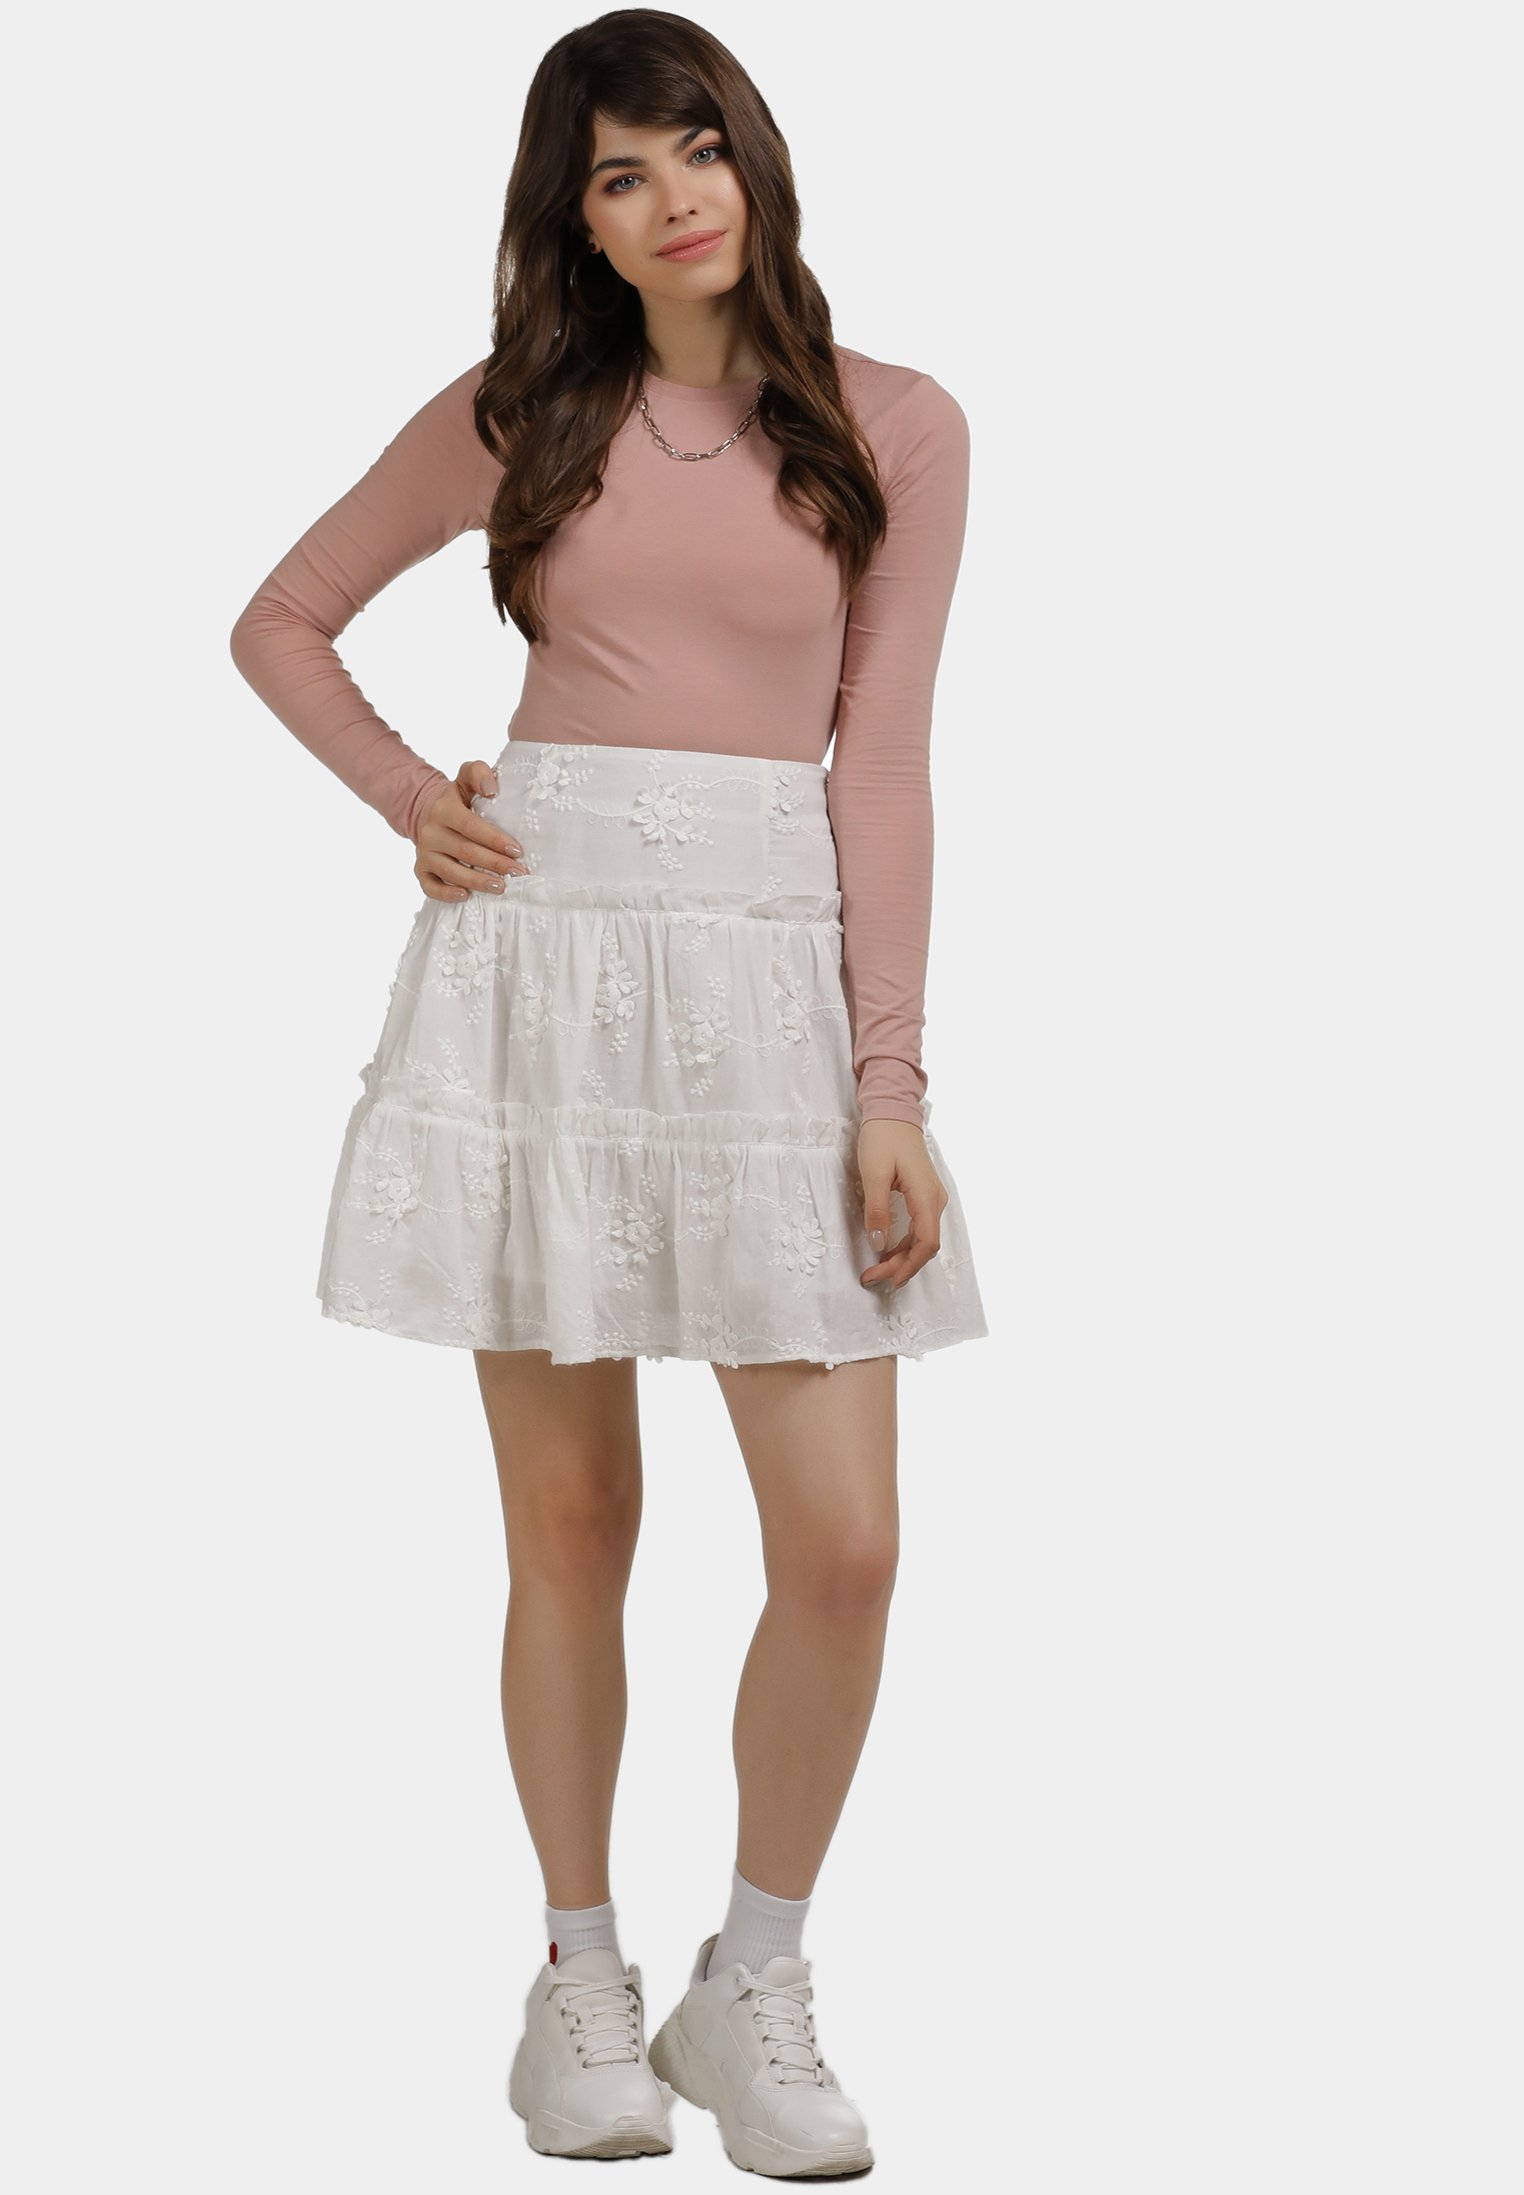 Visit New Women's Clothing myMo A-line skirt weiss hUTnz9vyW